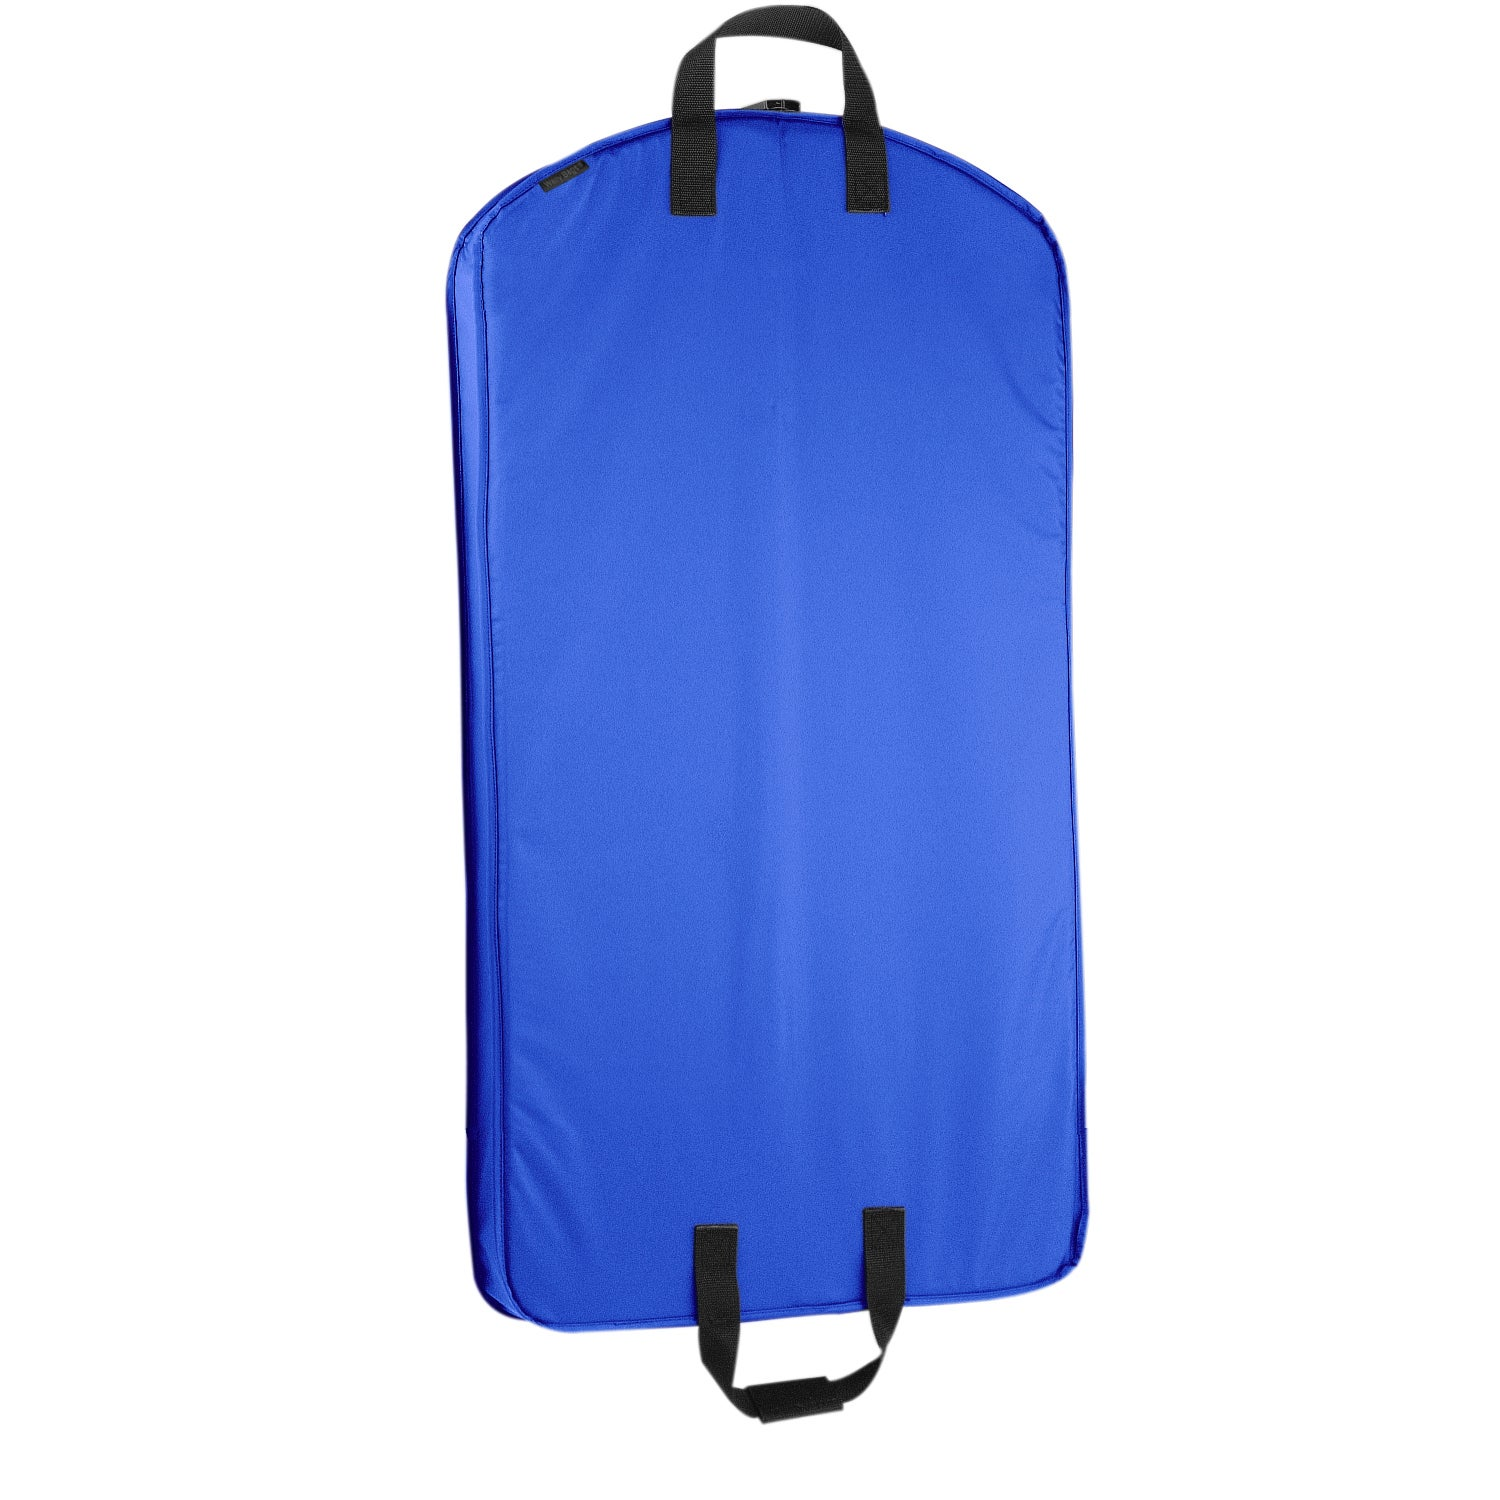 Wally Bags 40 Inch Suit Length Garment Bag With Handles